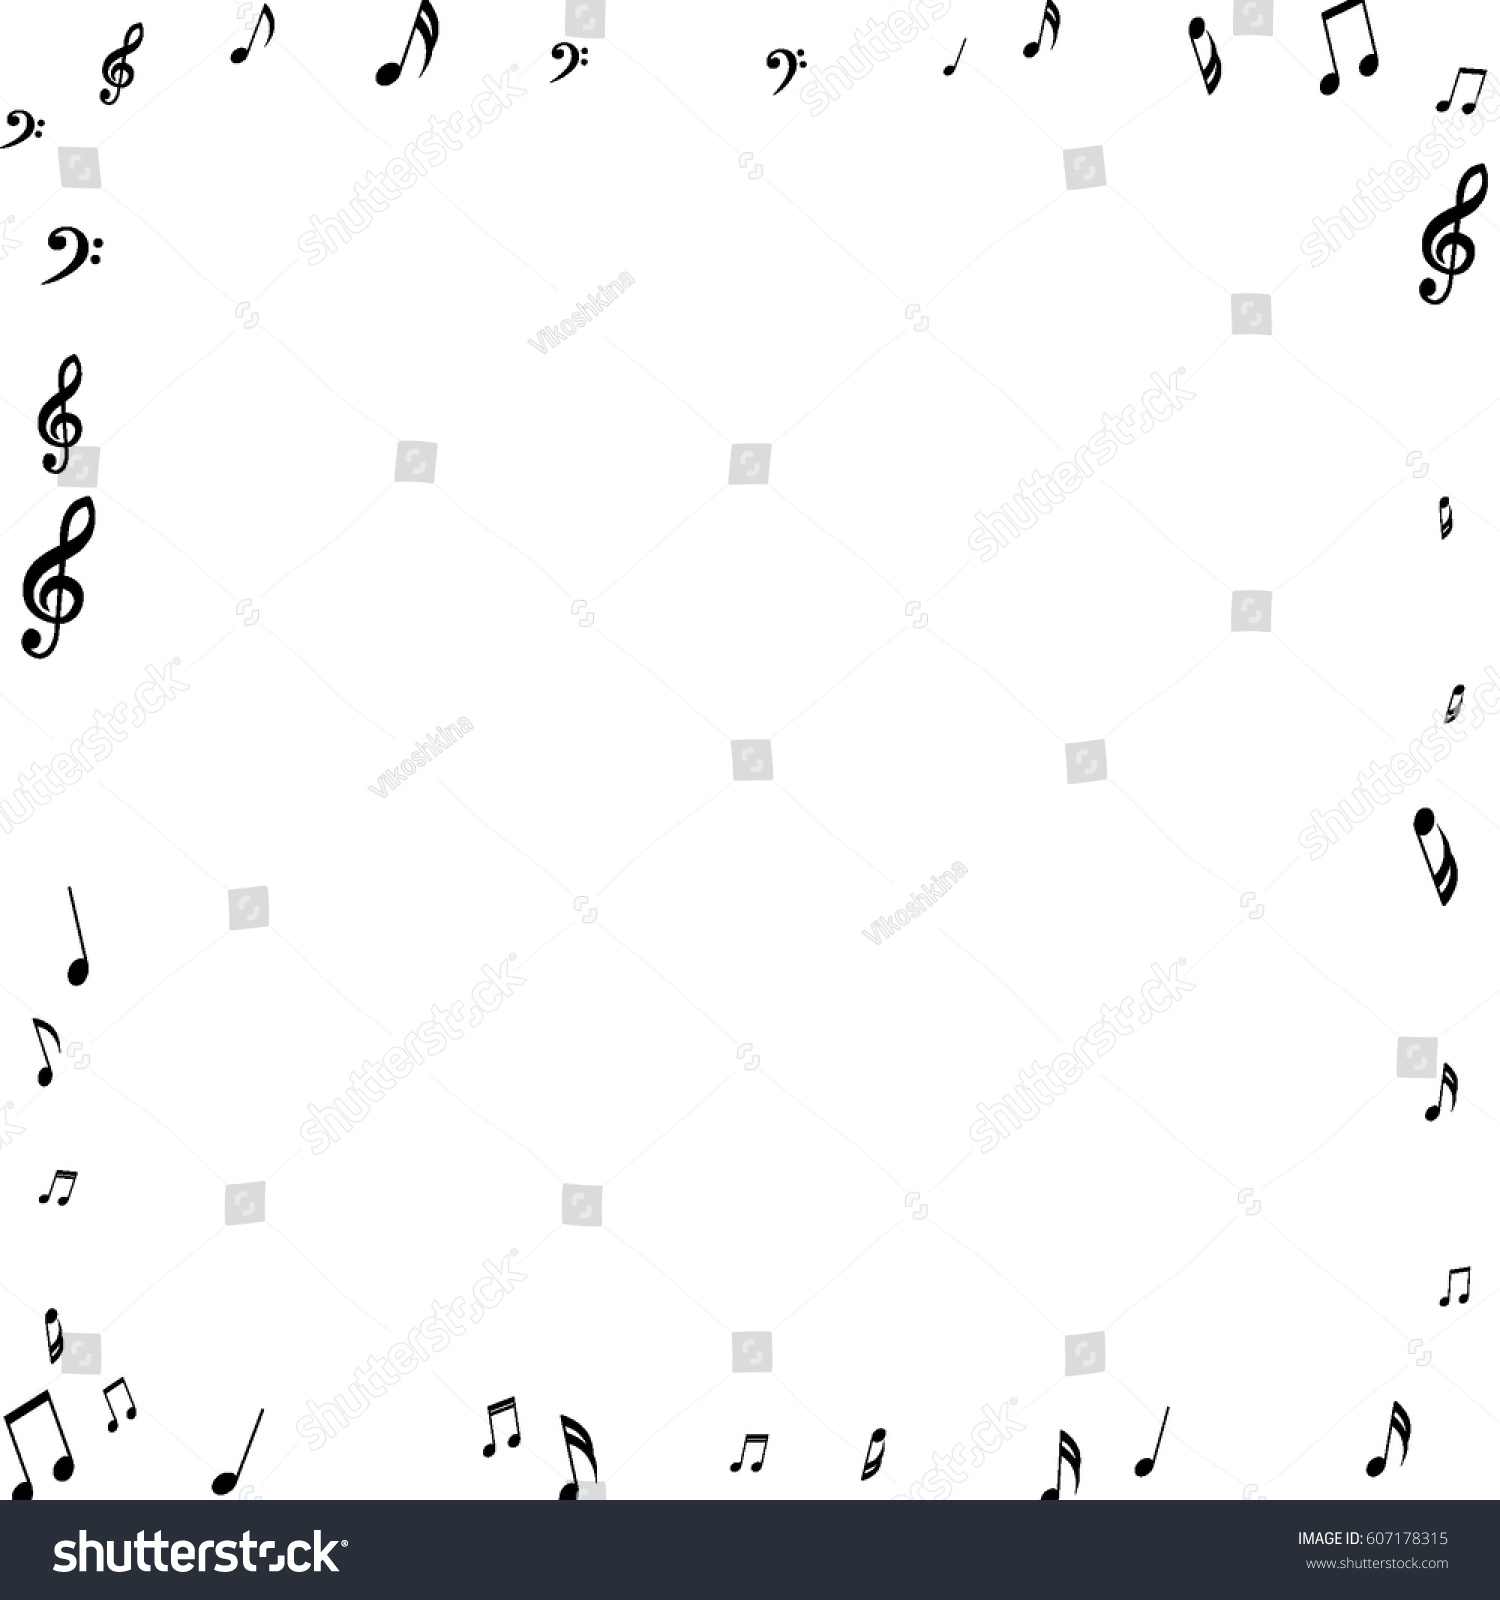 Square frame music notes treble bass stock vector 607178315 square frame of music notes treble and bass clefs black musical symbols on white background buycottarizona Choice Image